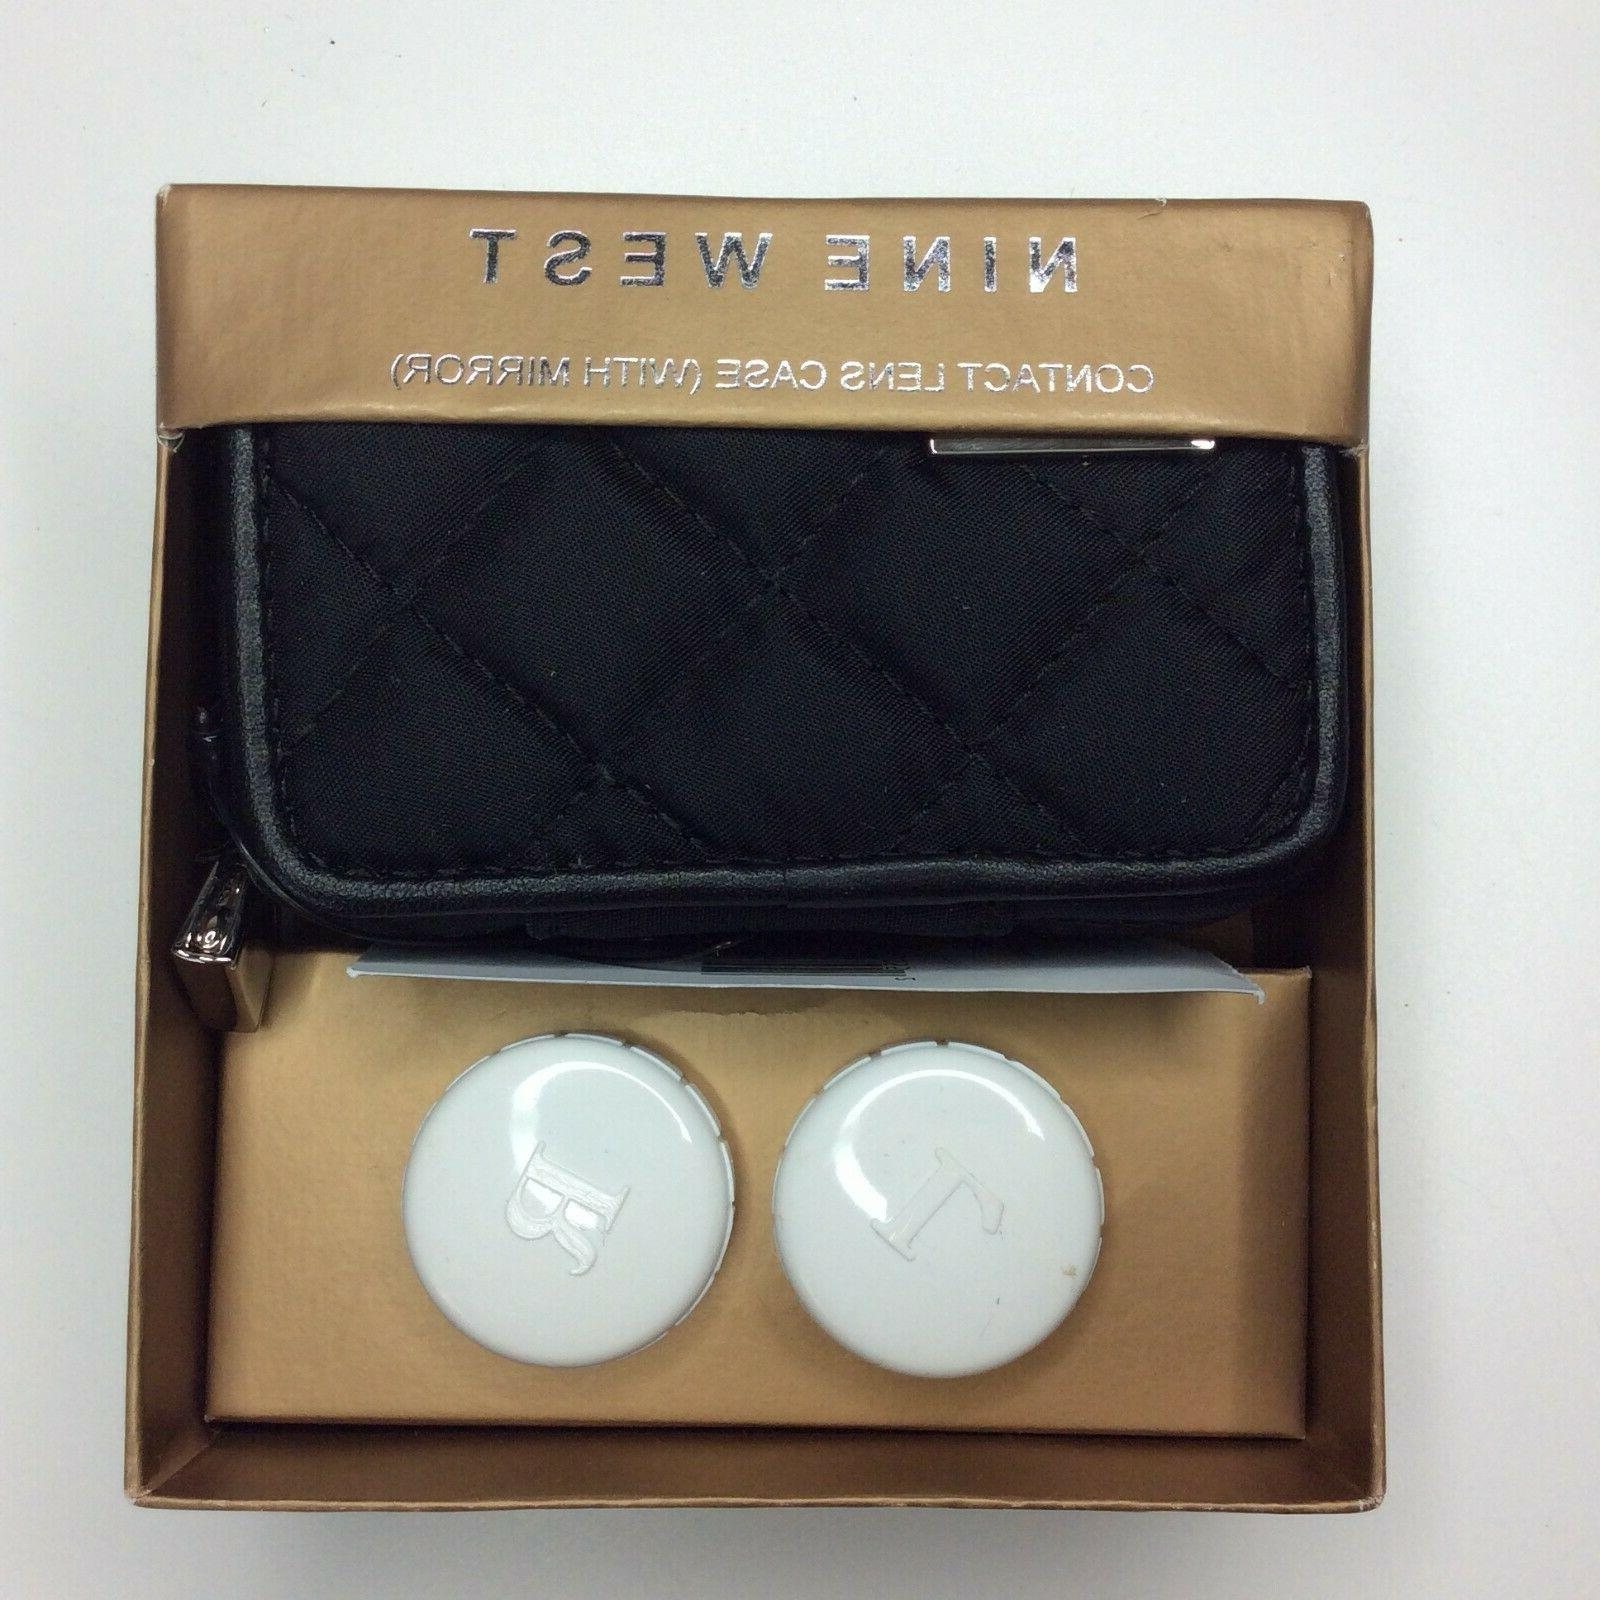 new contact lens case with mirrors quilted